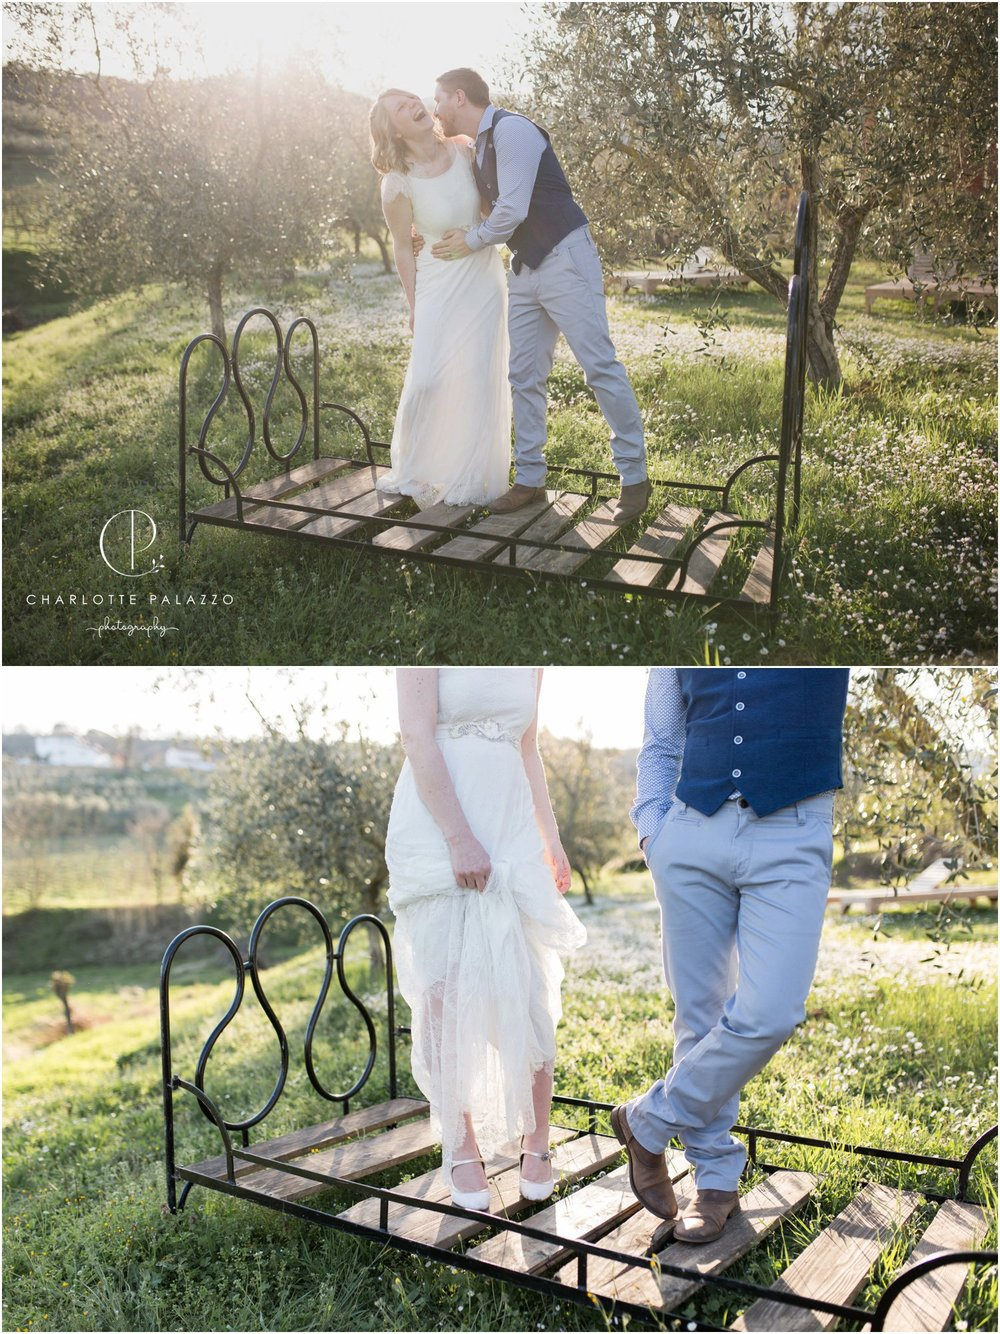 Destination_Wedding_Photographer_Florence_Italy_Tuscany_Locanda_Casanuova_Rustic_Wedding_0035.jpg